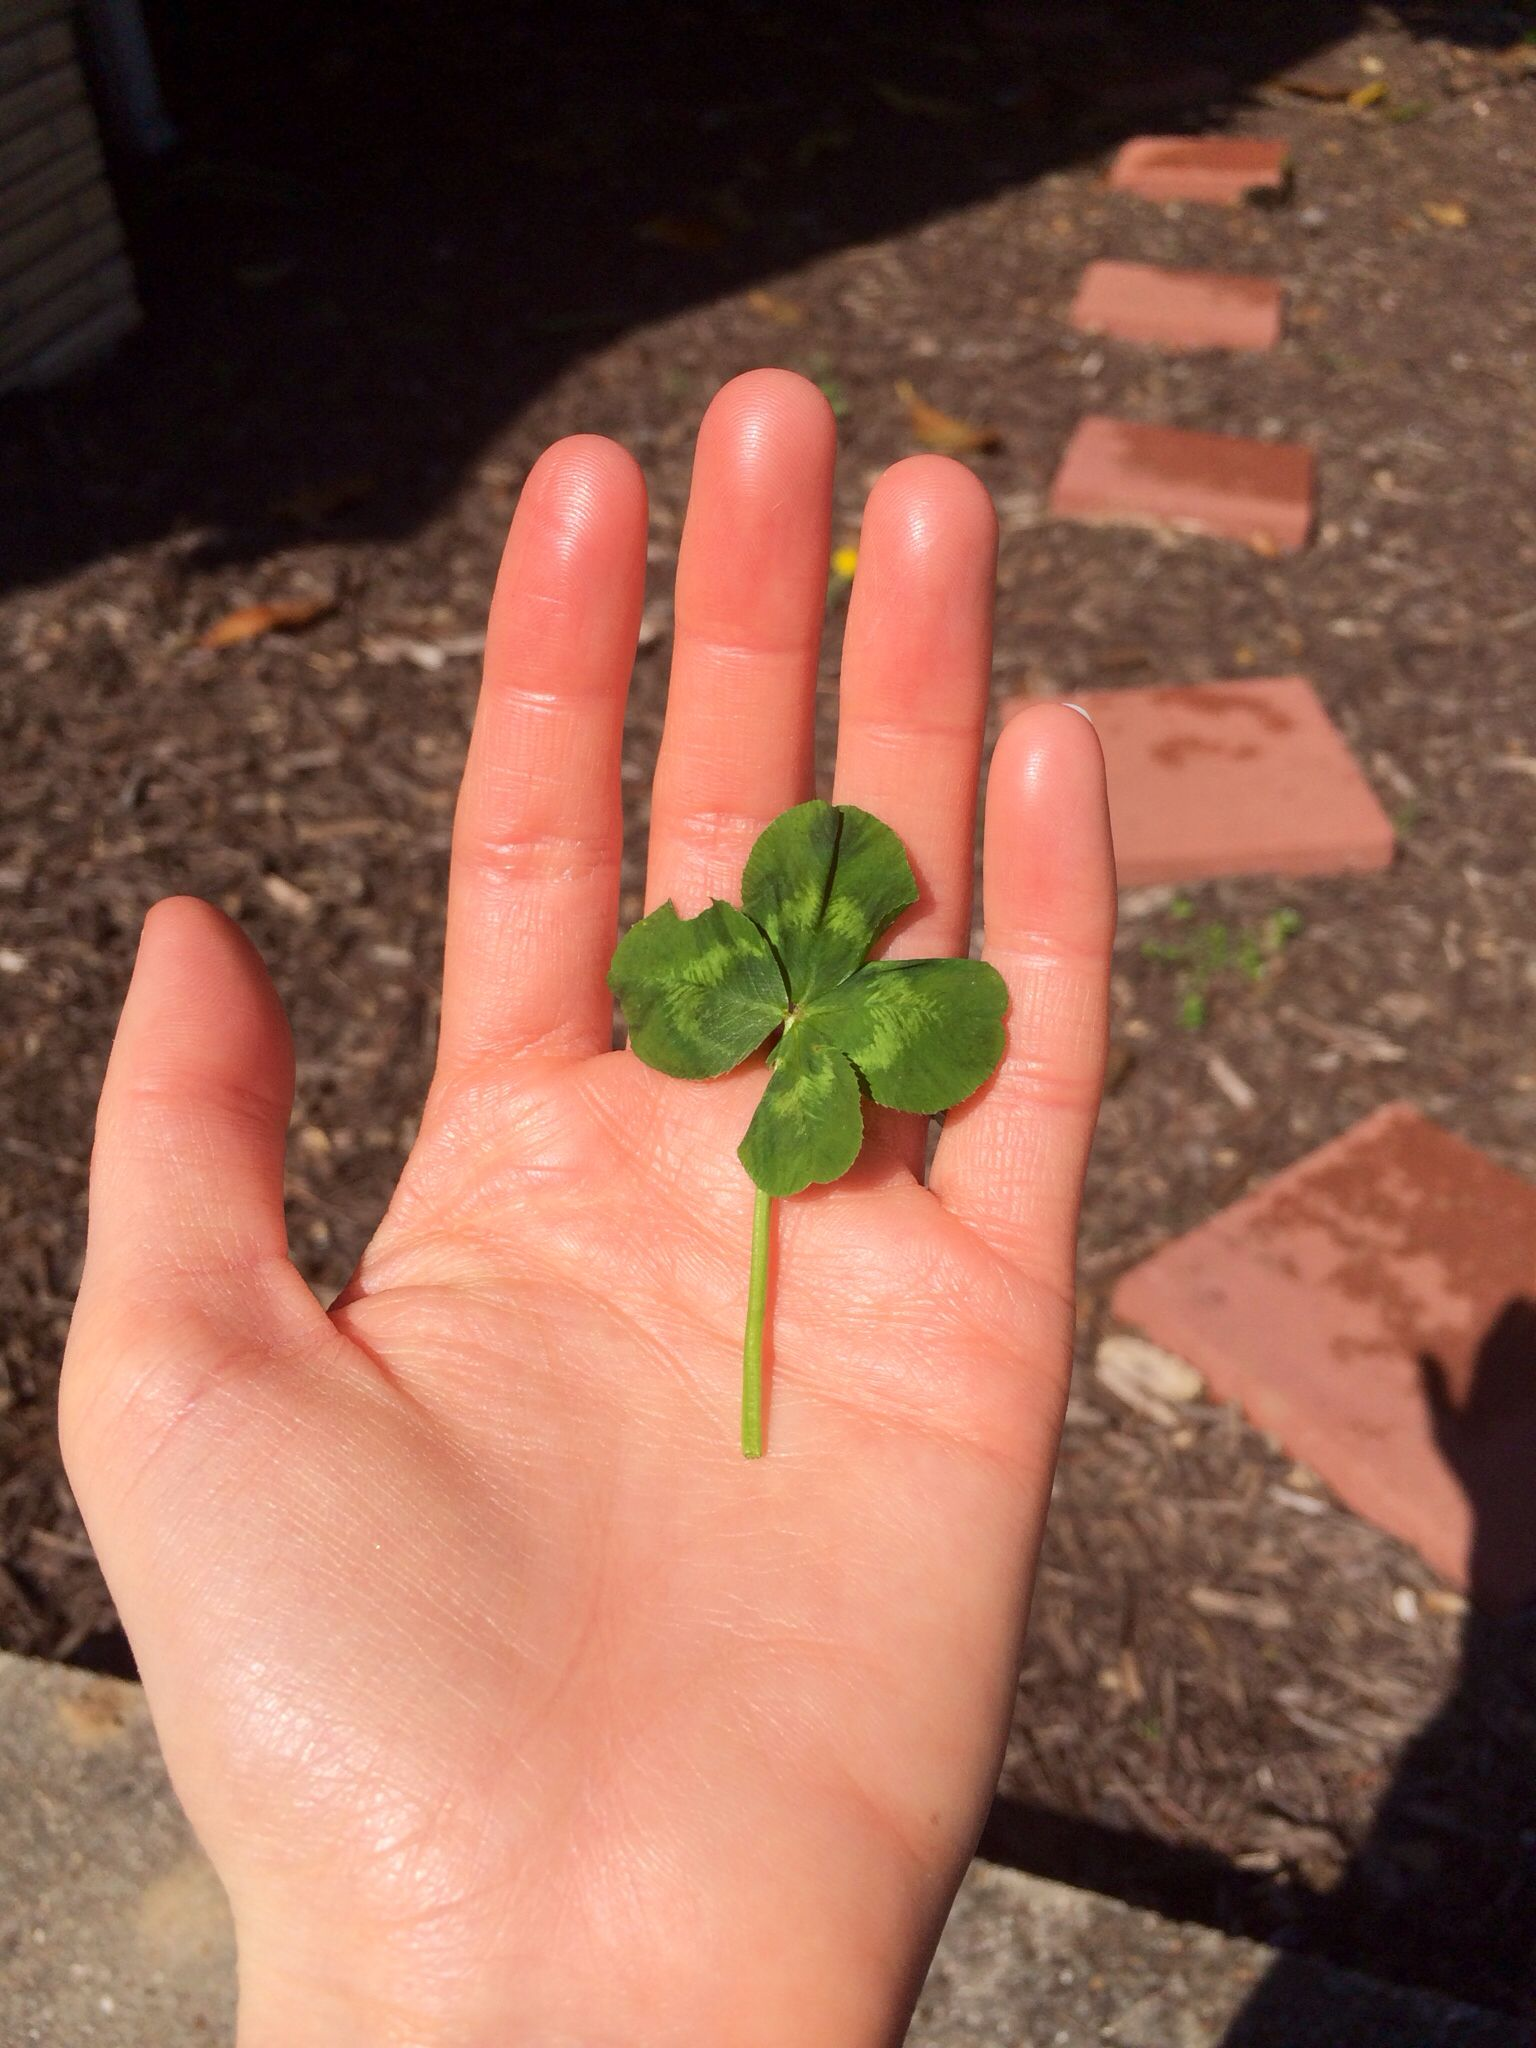 My daughter has found hundreds of four leaf clovers!